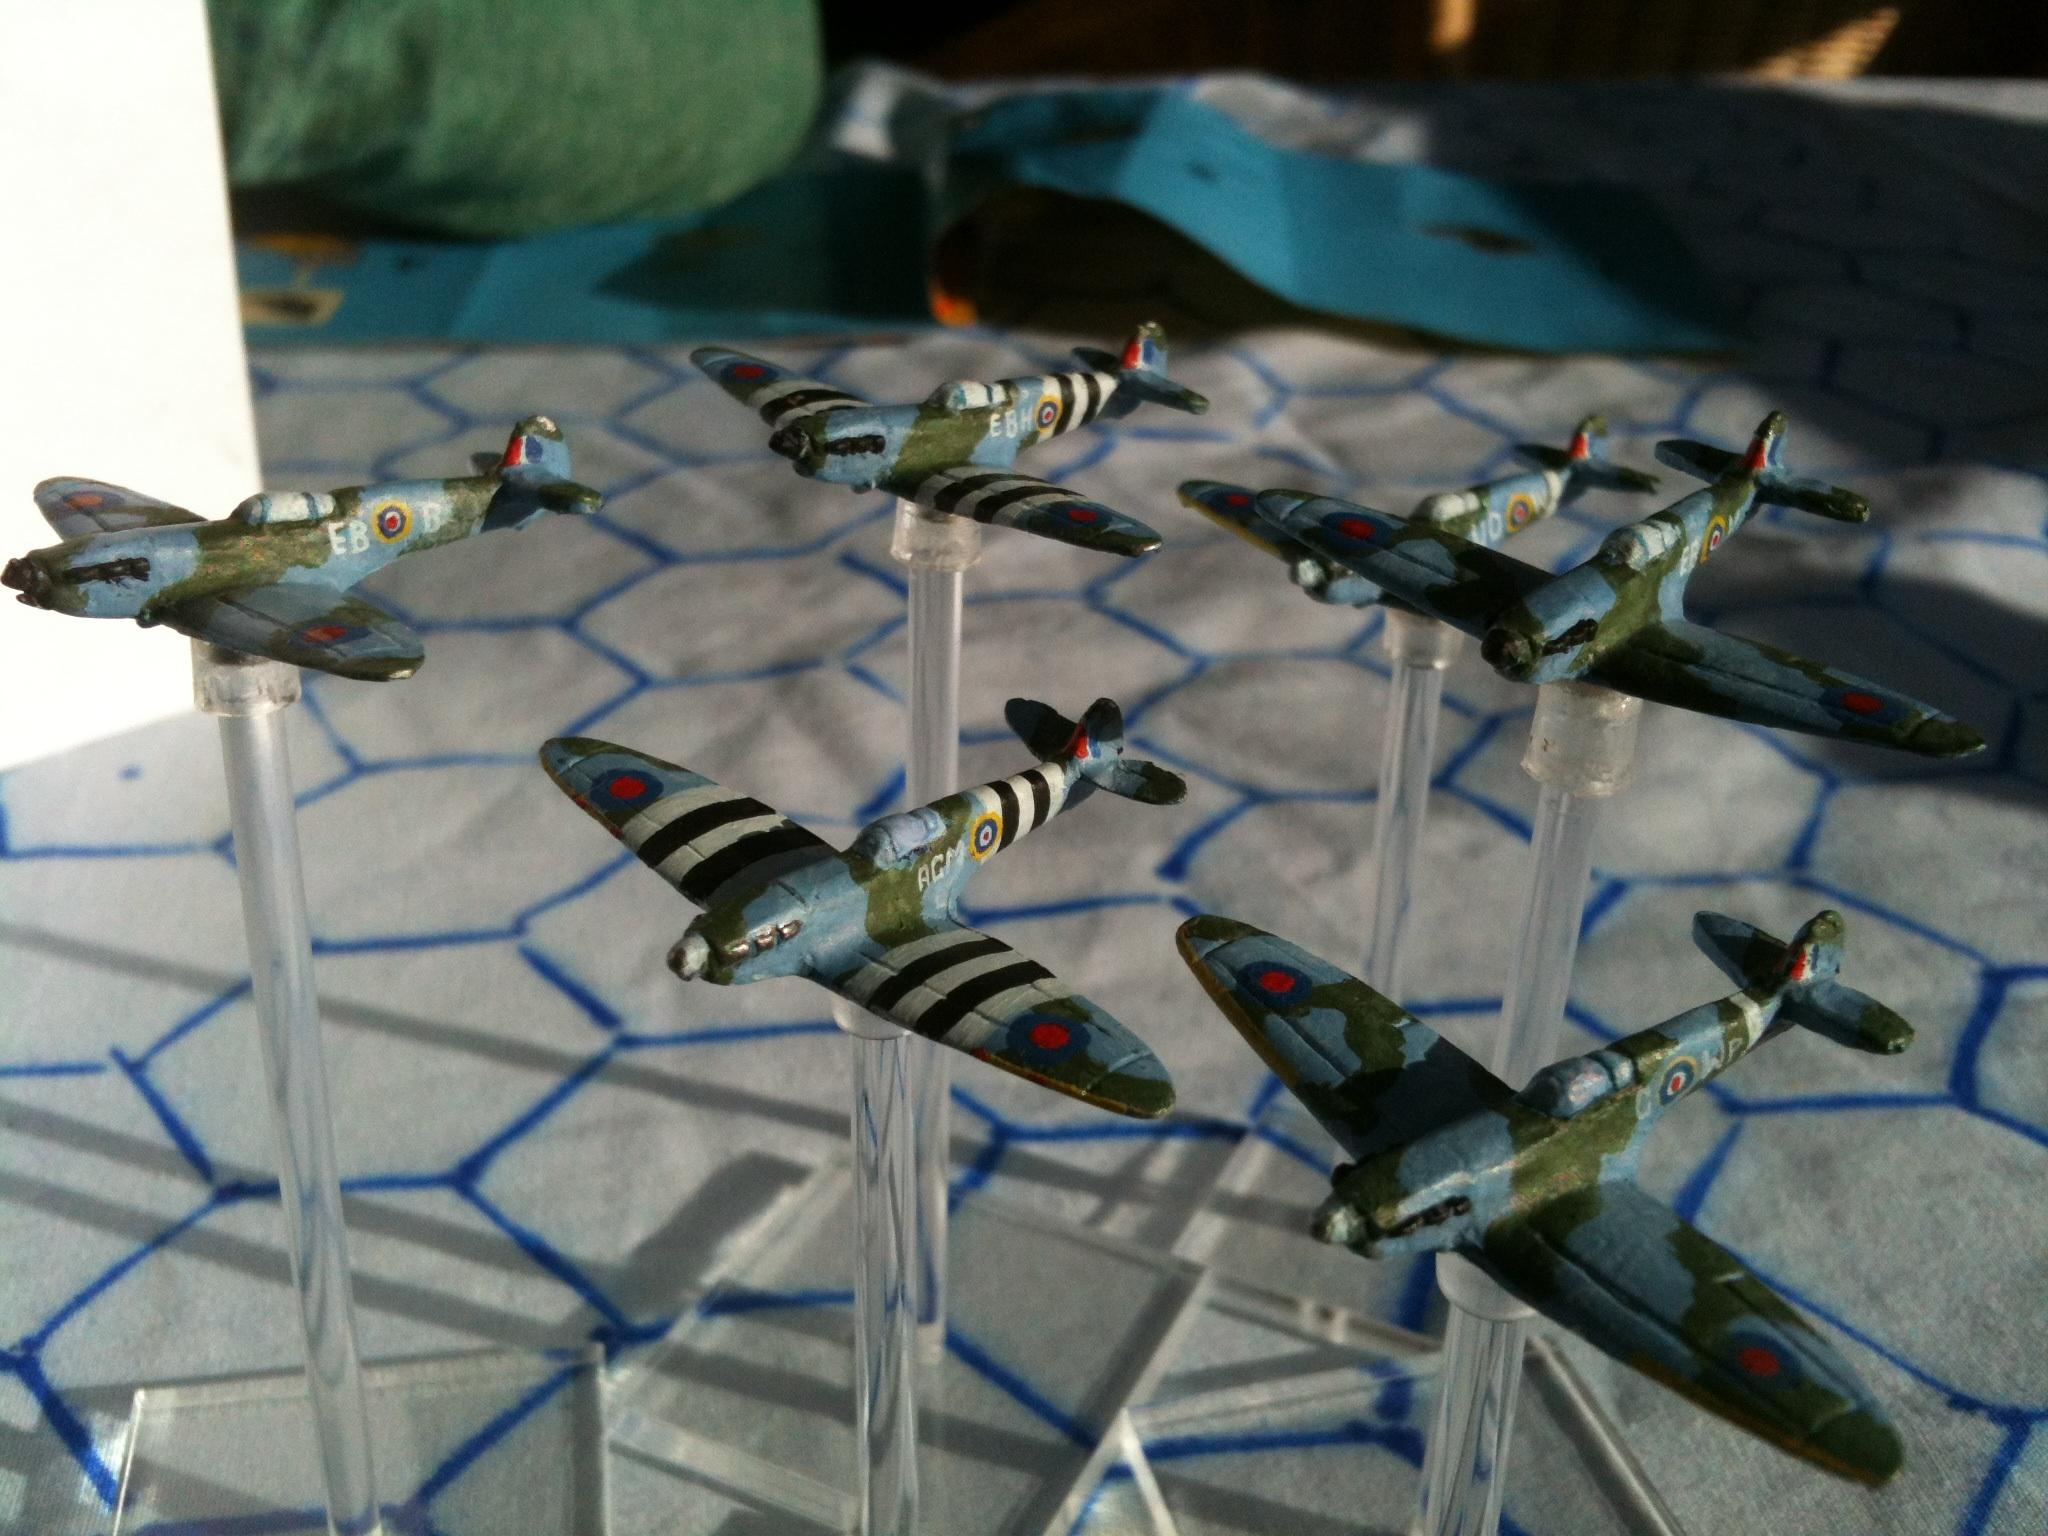 1:300, 1:300 Scale, 6mm, 6mm Scale, Air Combat, Airborne, Aircraft, Airplane, Aviation, Check Your 6!, Finland, Fliers, French, Germans, Imperial Japan, Italian, Luftwaffe, Planes, Raf, Republic Of China, Soviet, Spitfire, Usaaf, World War 2